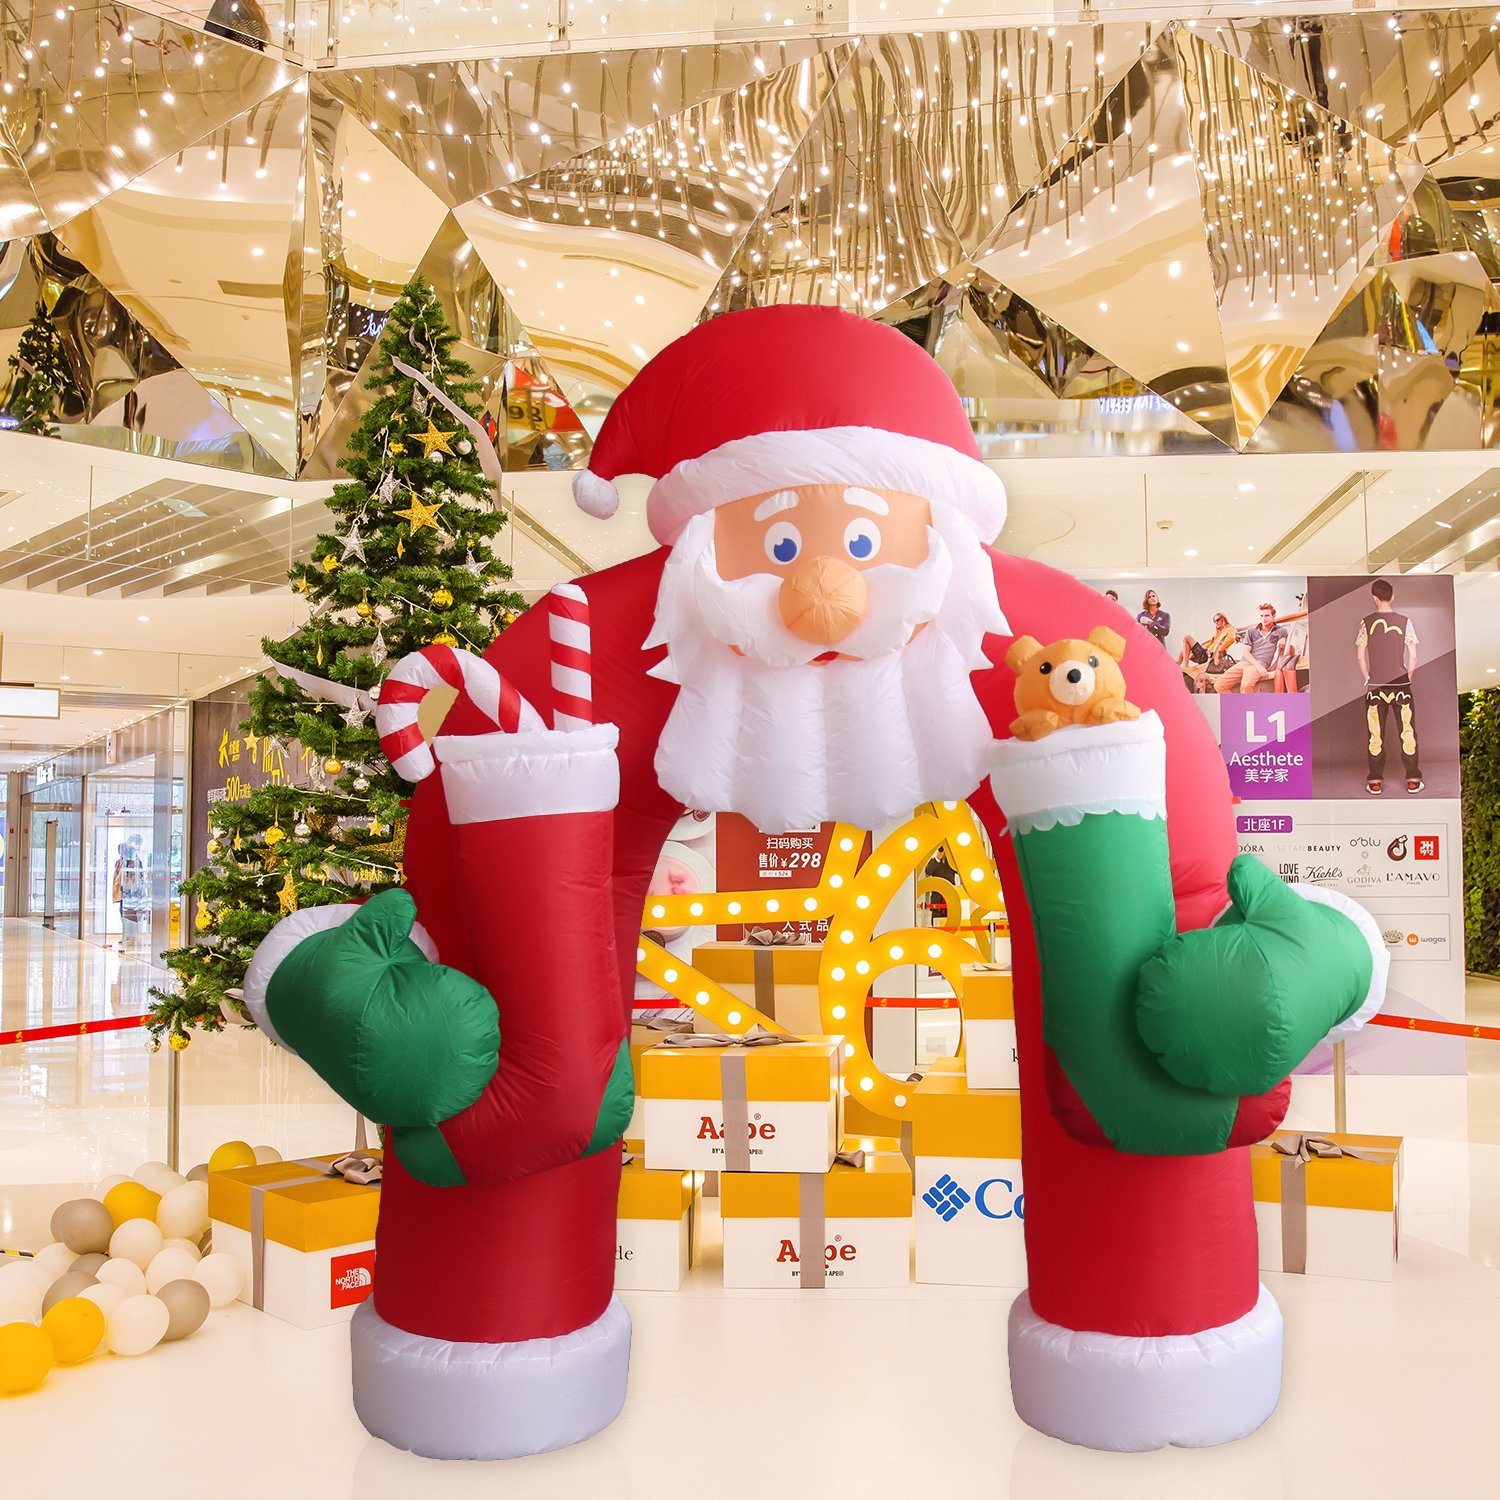 8 Airblown Inflatable Santa Penguin Coffee Shop Igloo: Christmas Inflatable Archways